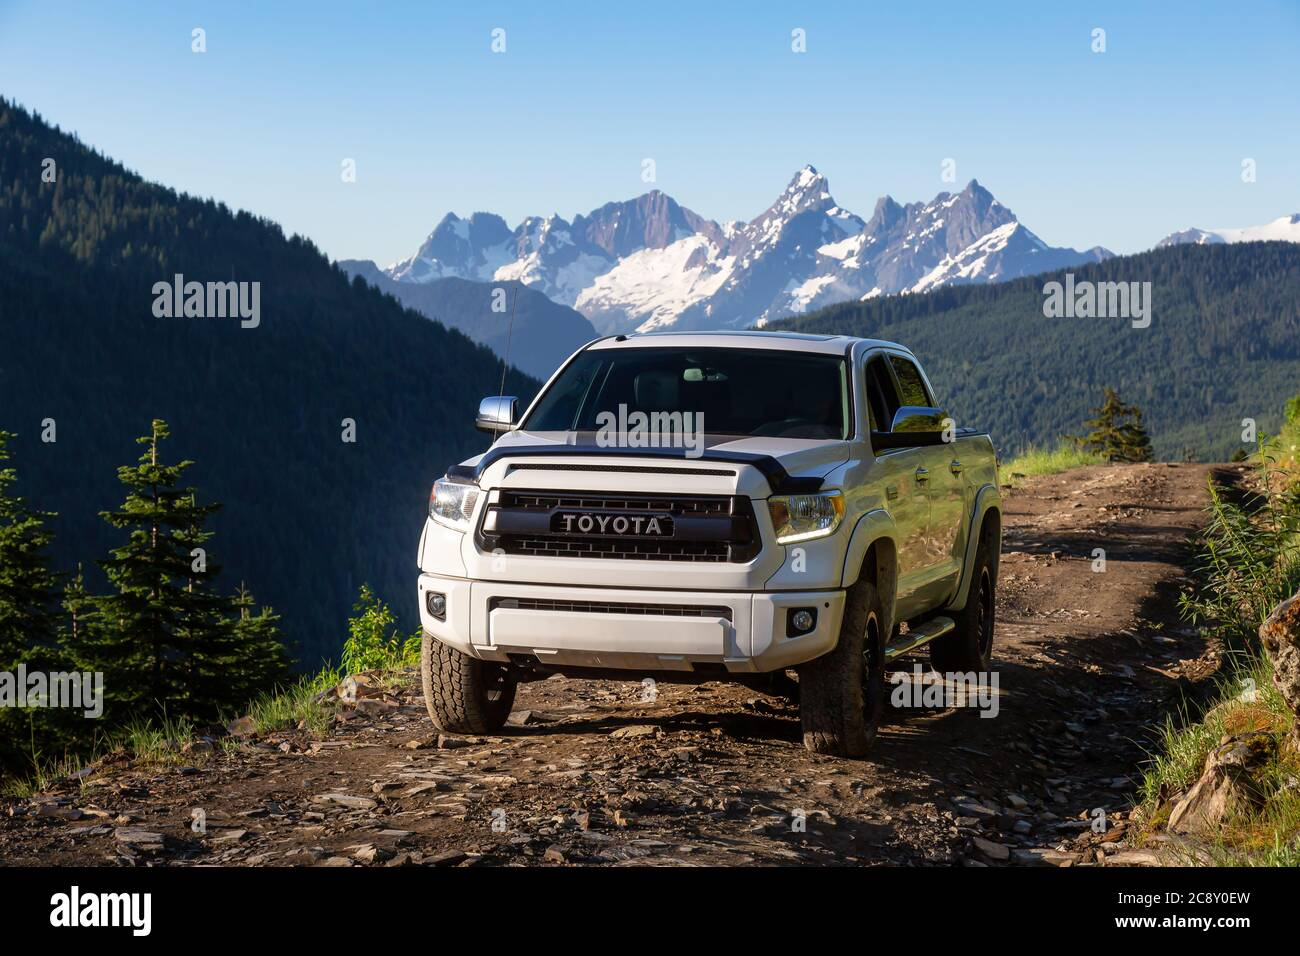 Toyota Tacoma Riding On The 4x4 Offroad Trails In The Mountains Stock Photo Alamy